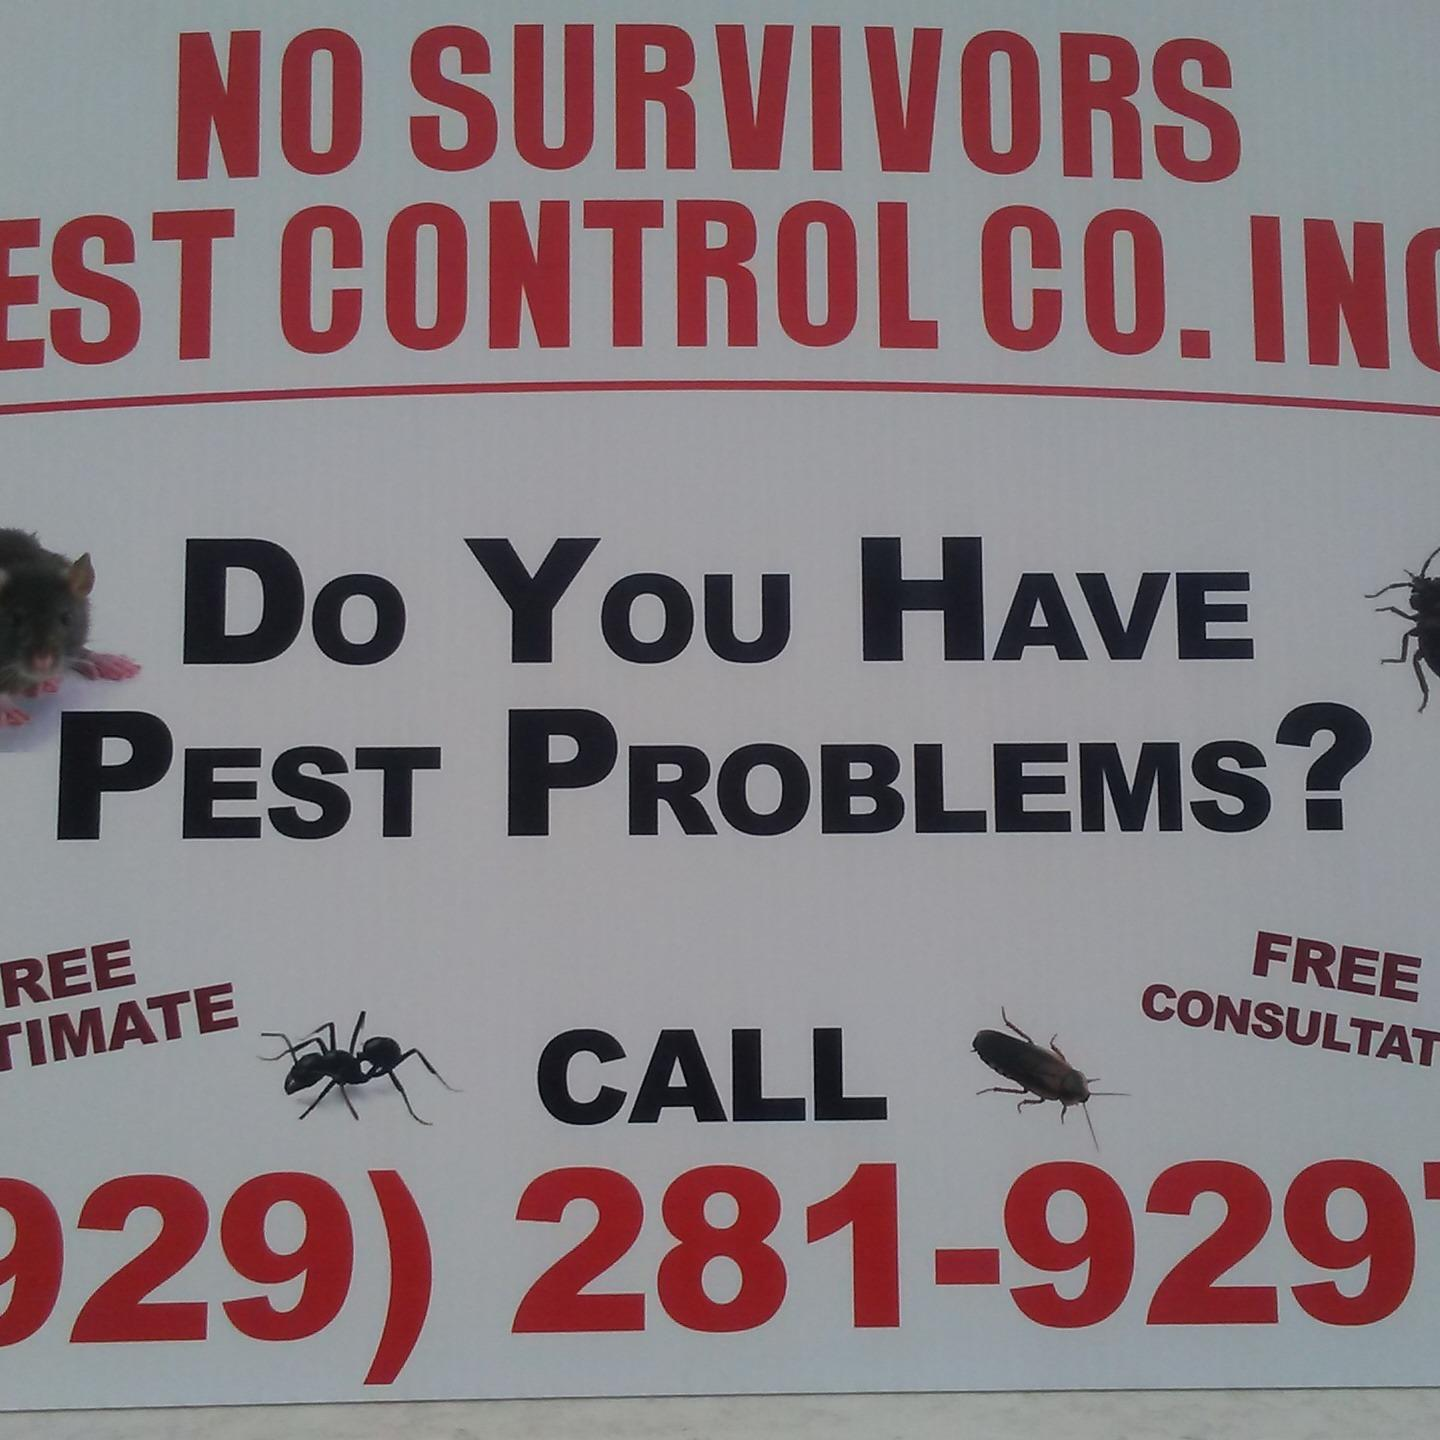 No Survivors Pest Control Co., Inc.